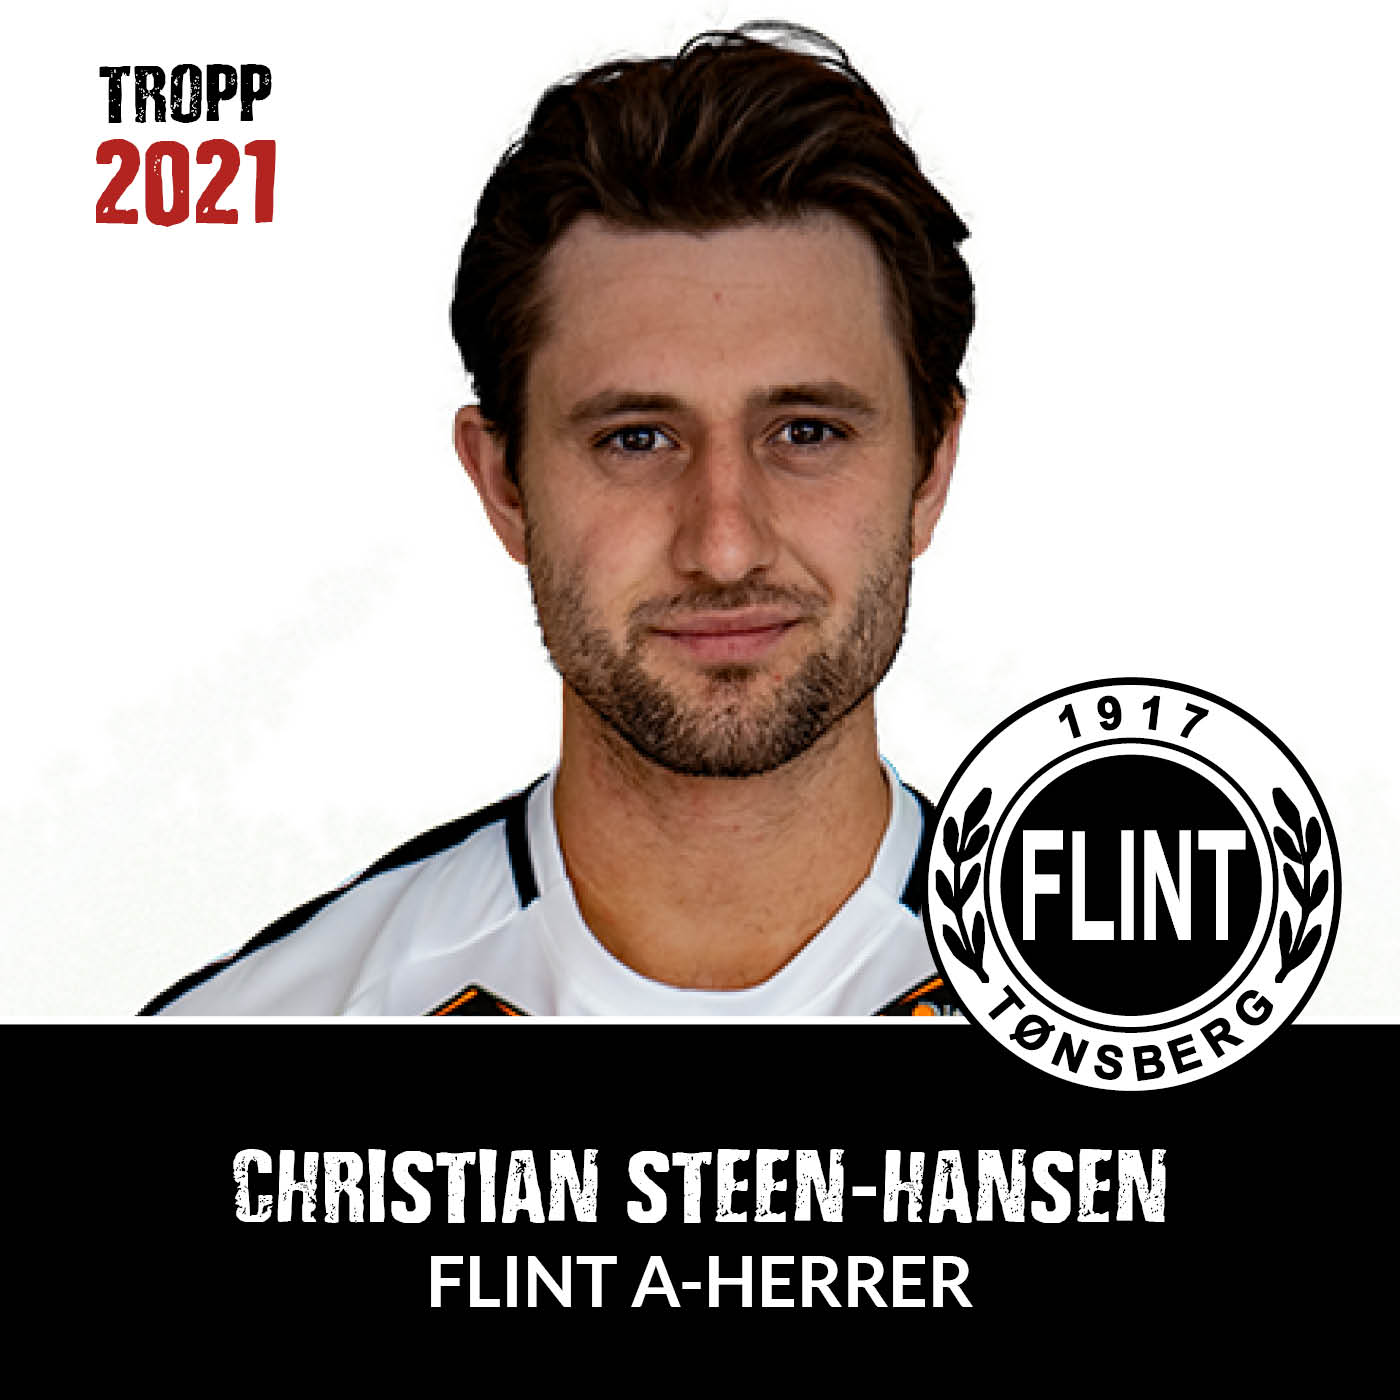 https://www.flintfotball.no/wp-content/uploads/2021/01/A-herrer-Christian-Steen-Hansen.jpg